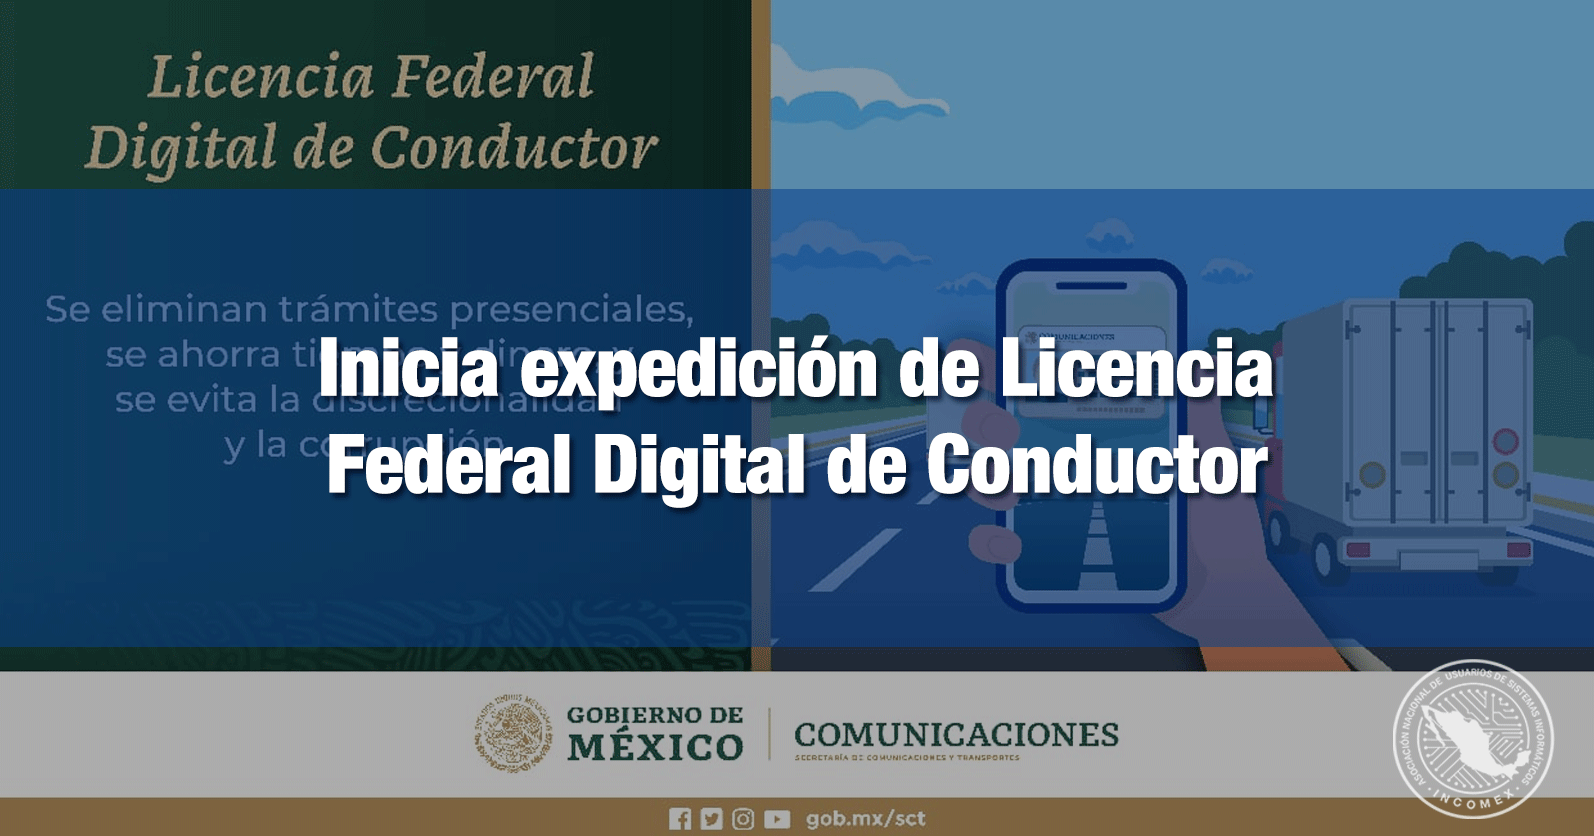 Inicia expedición de Licencia Federal Digital de Conductor